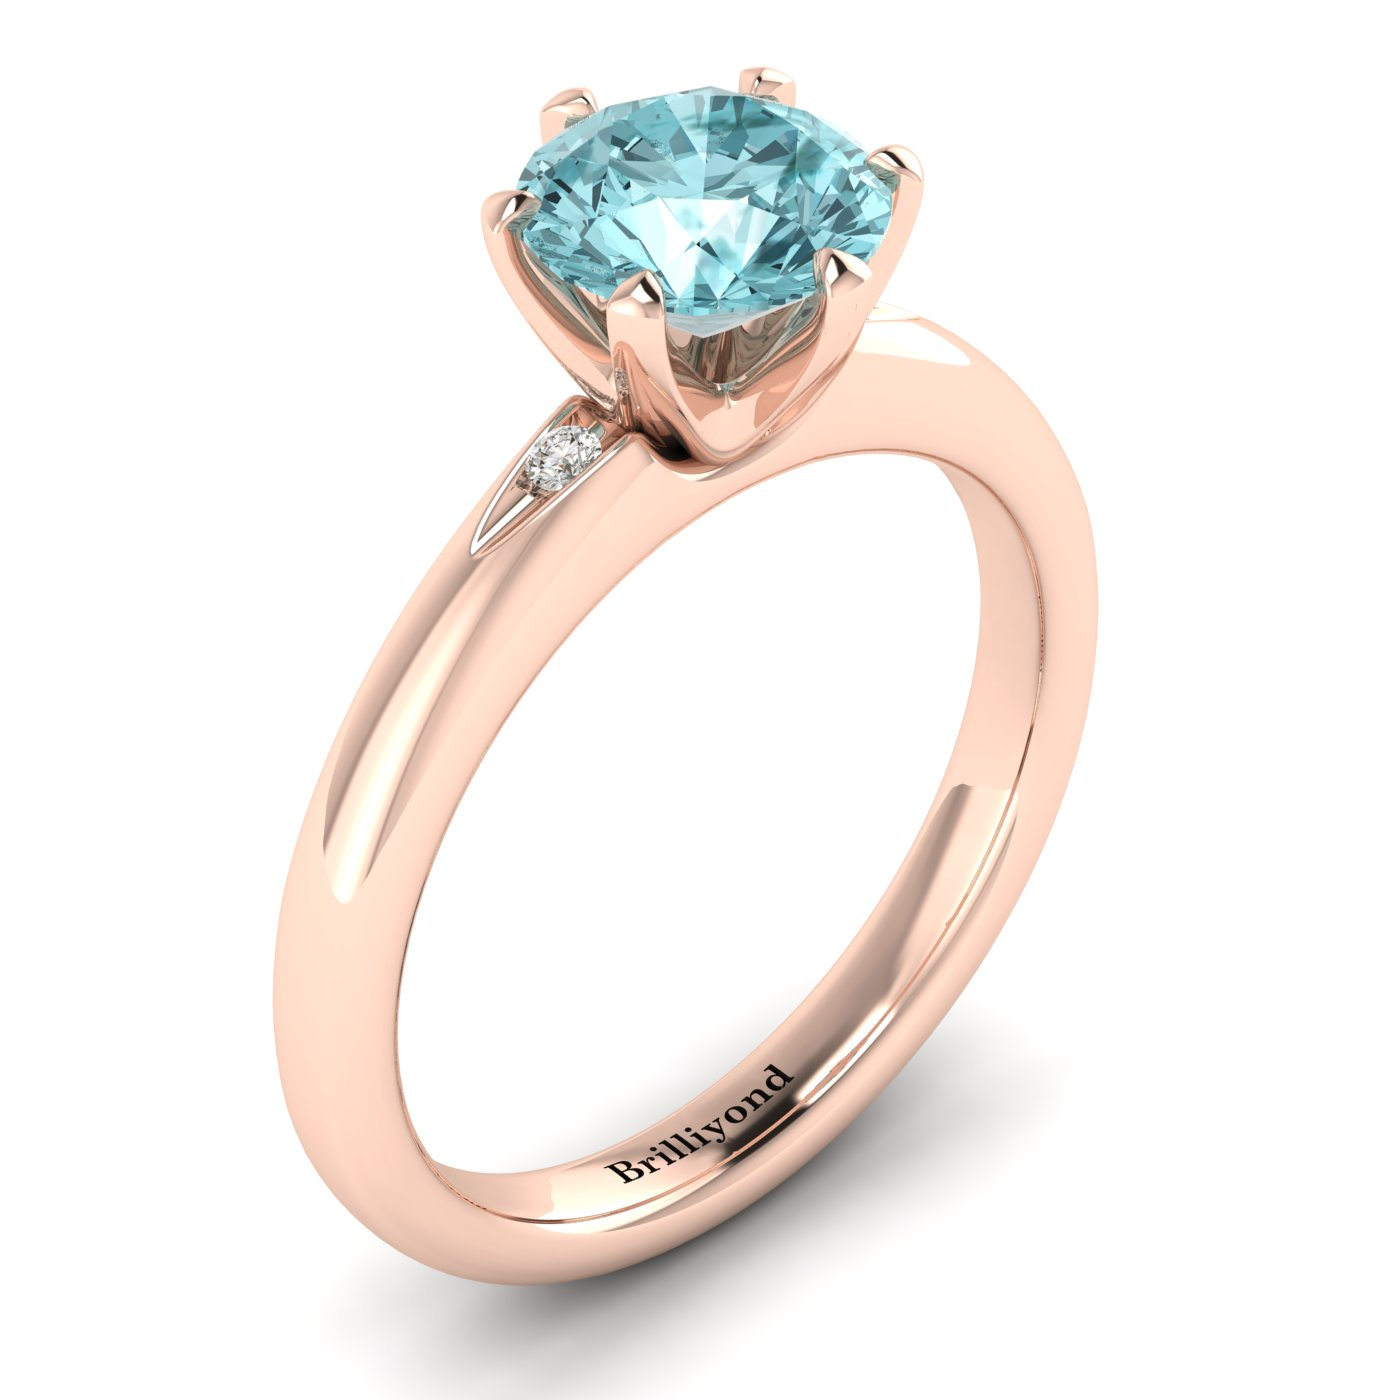 Aquamarine Rose Gold Solitaire Engagement Ring Byond_image1